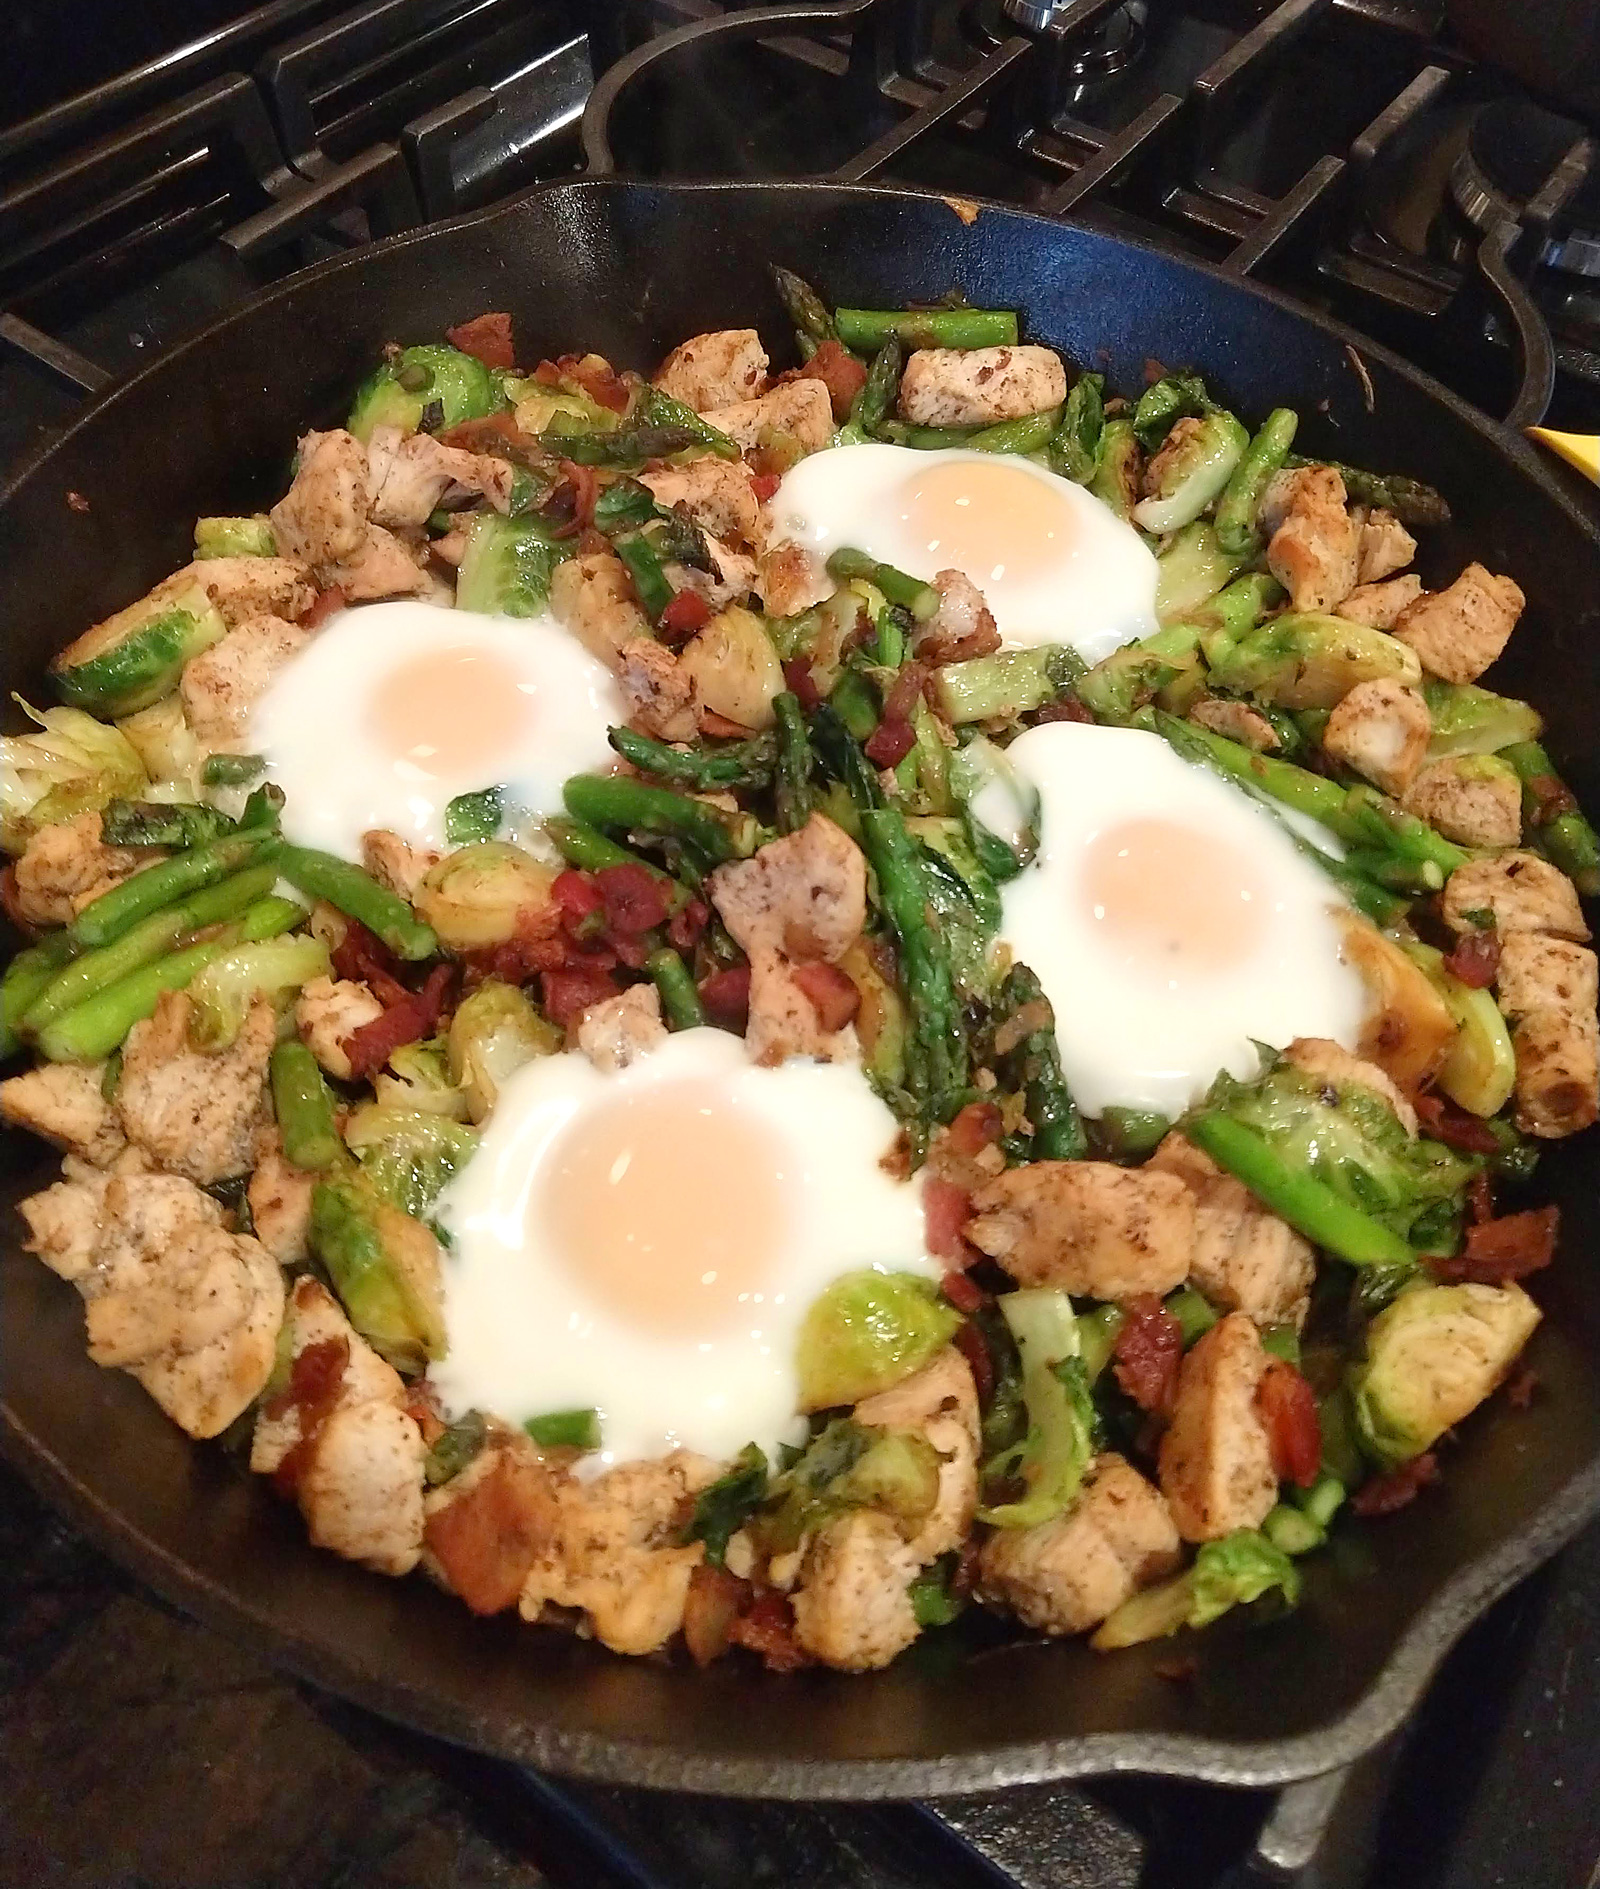 Chicken, Bacon, Asparagus, & Brussels Sprouts Skillet